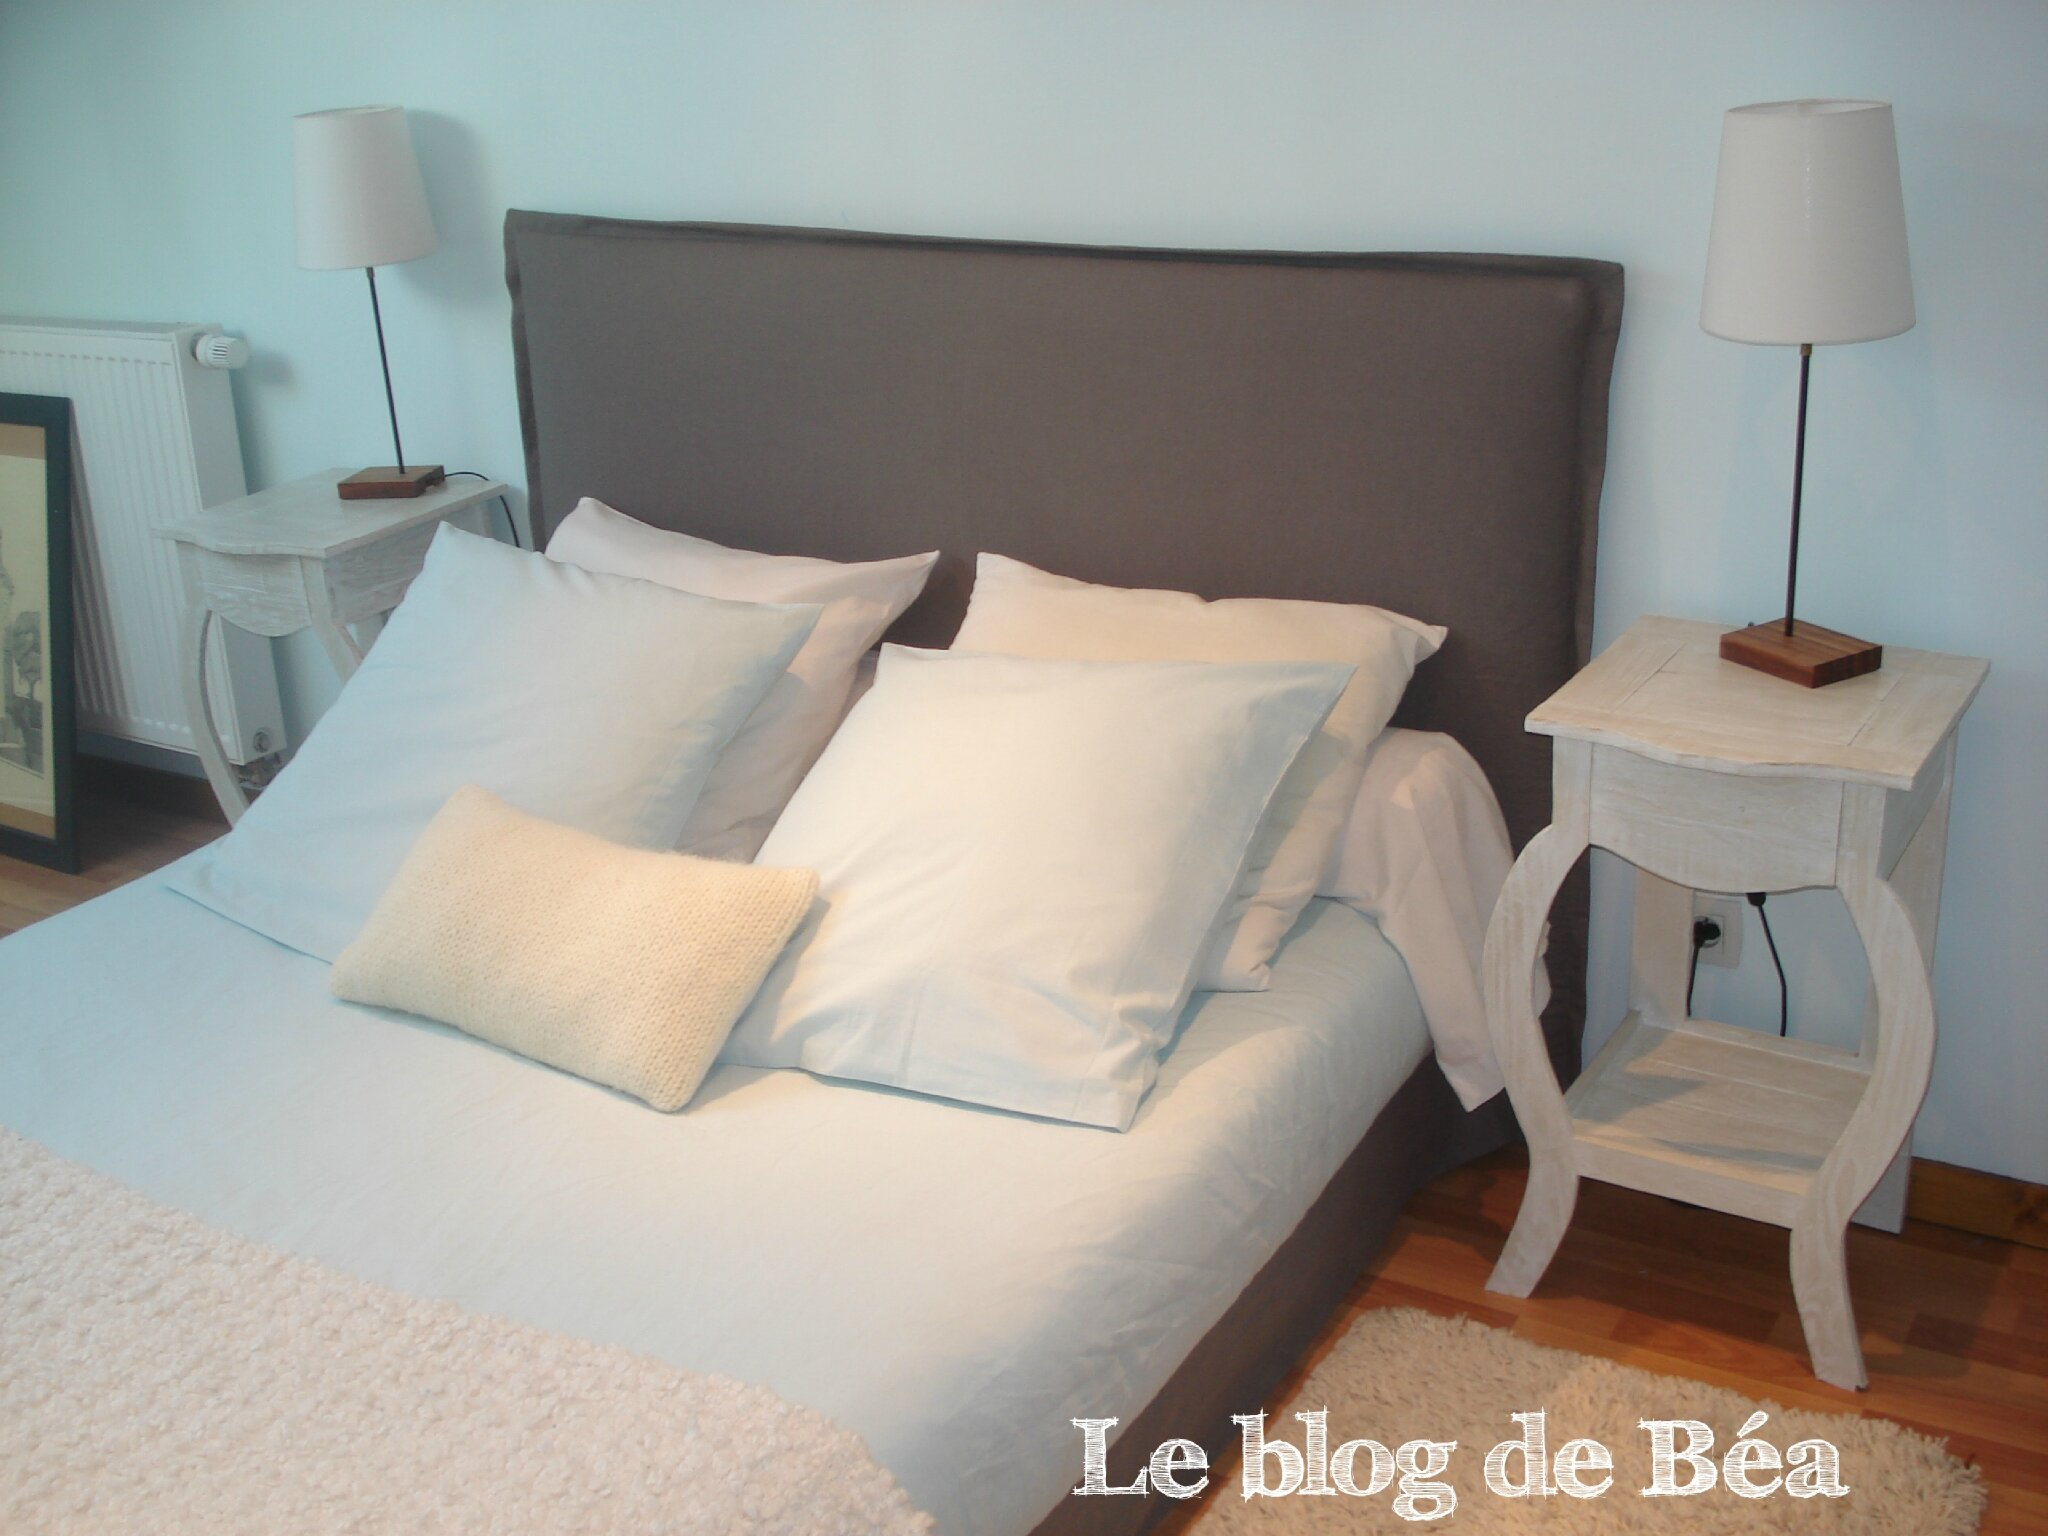 fabrication d une tete de lit. Black Bedroom Furniture Sets. Home Design Ideas